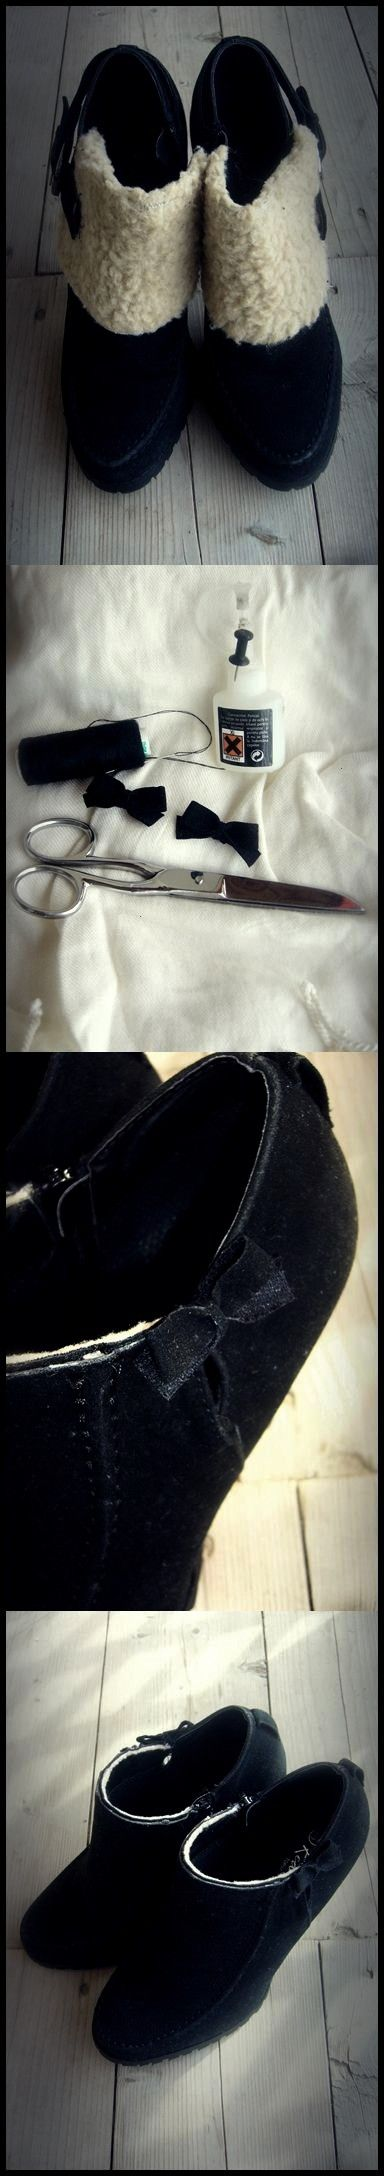 shoes using needle and thread scissors needleRefashion shoes using needle and thread scissors needle 15 tutorials on how to transform an old pair shoes into something new...